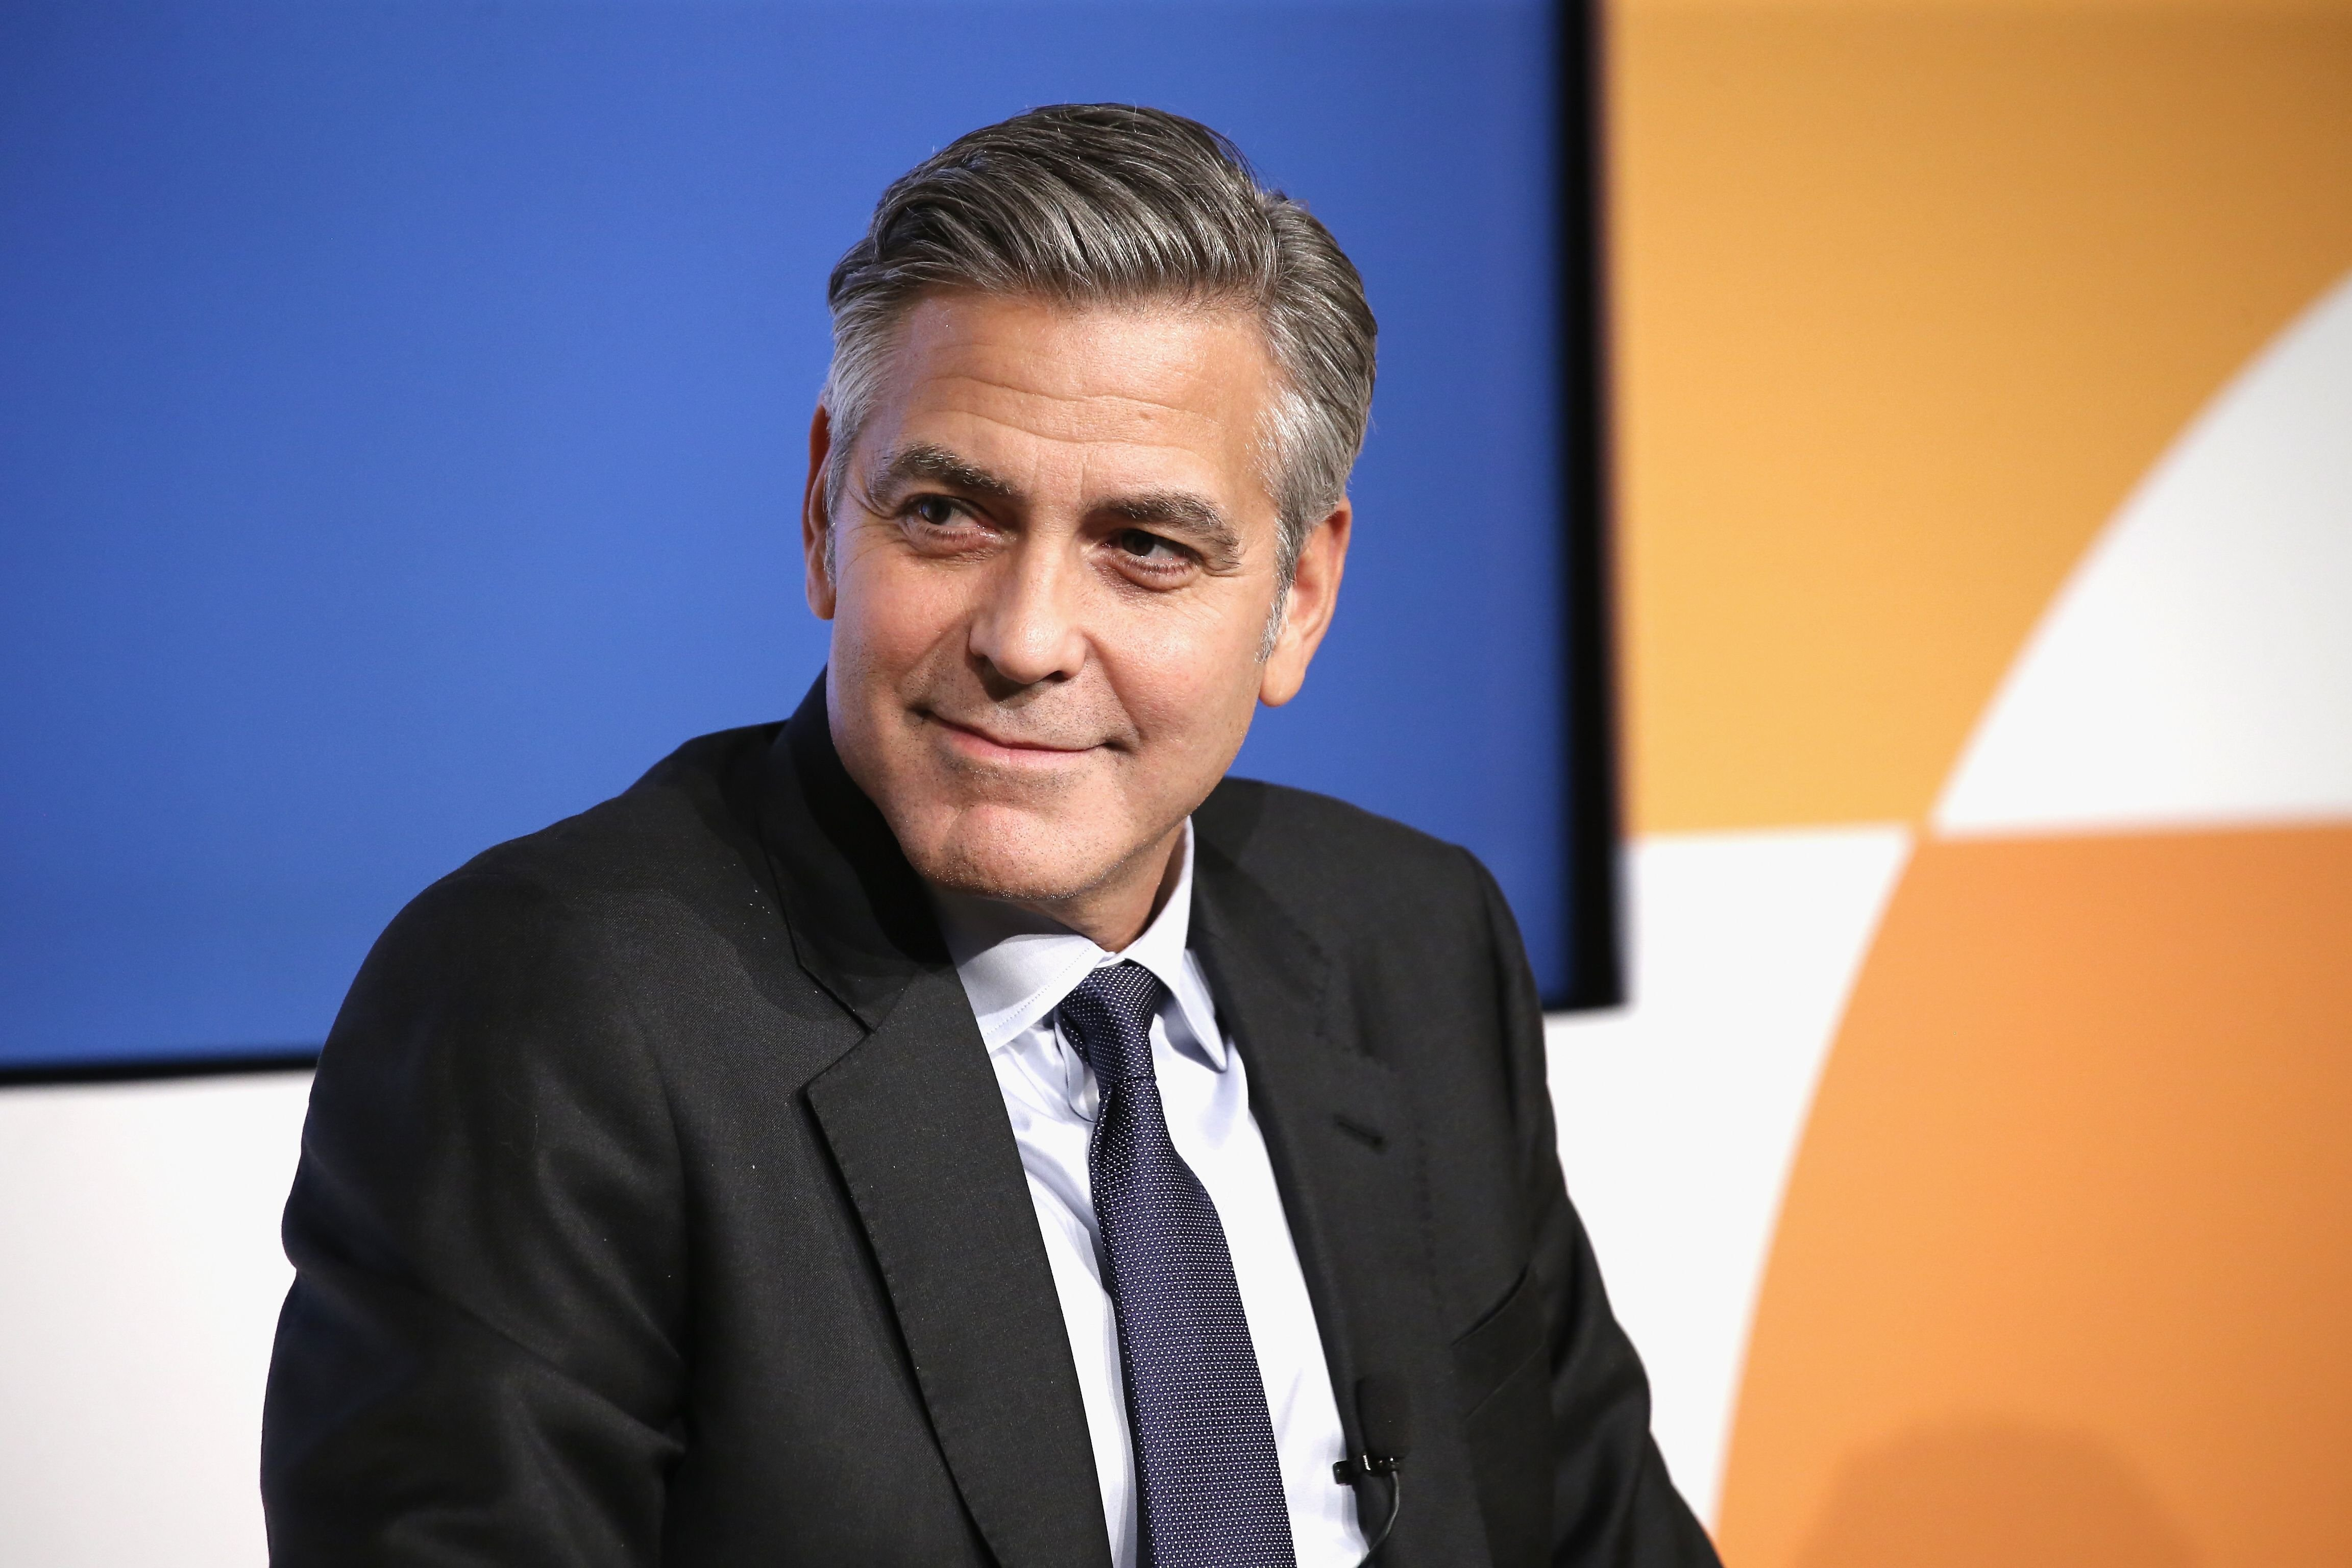 George Clooney at The 100 LIVES initiative on March 10, 2015 | Photo: Getty Images